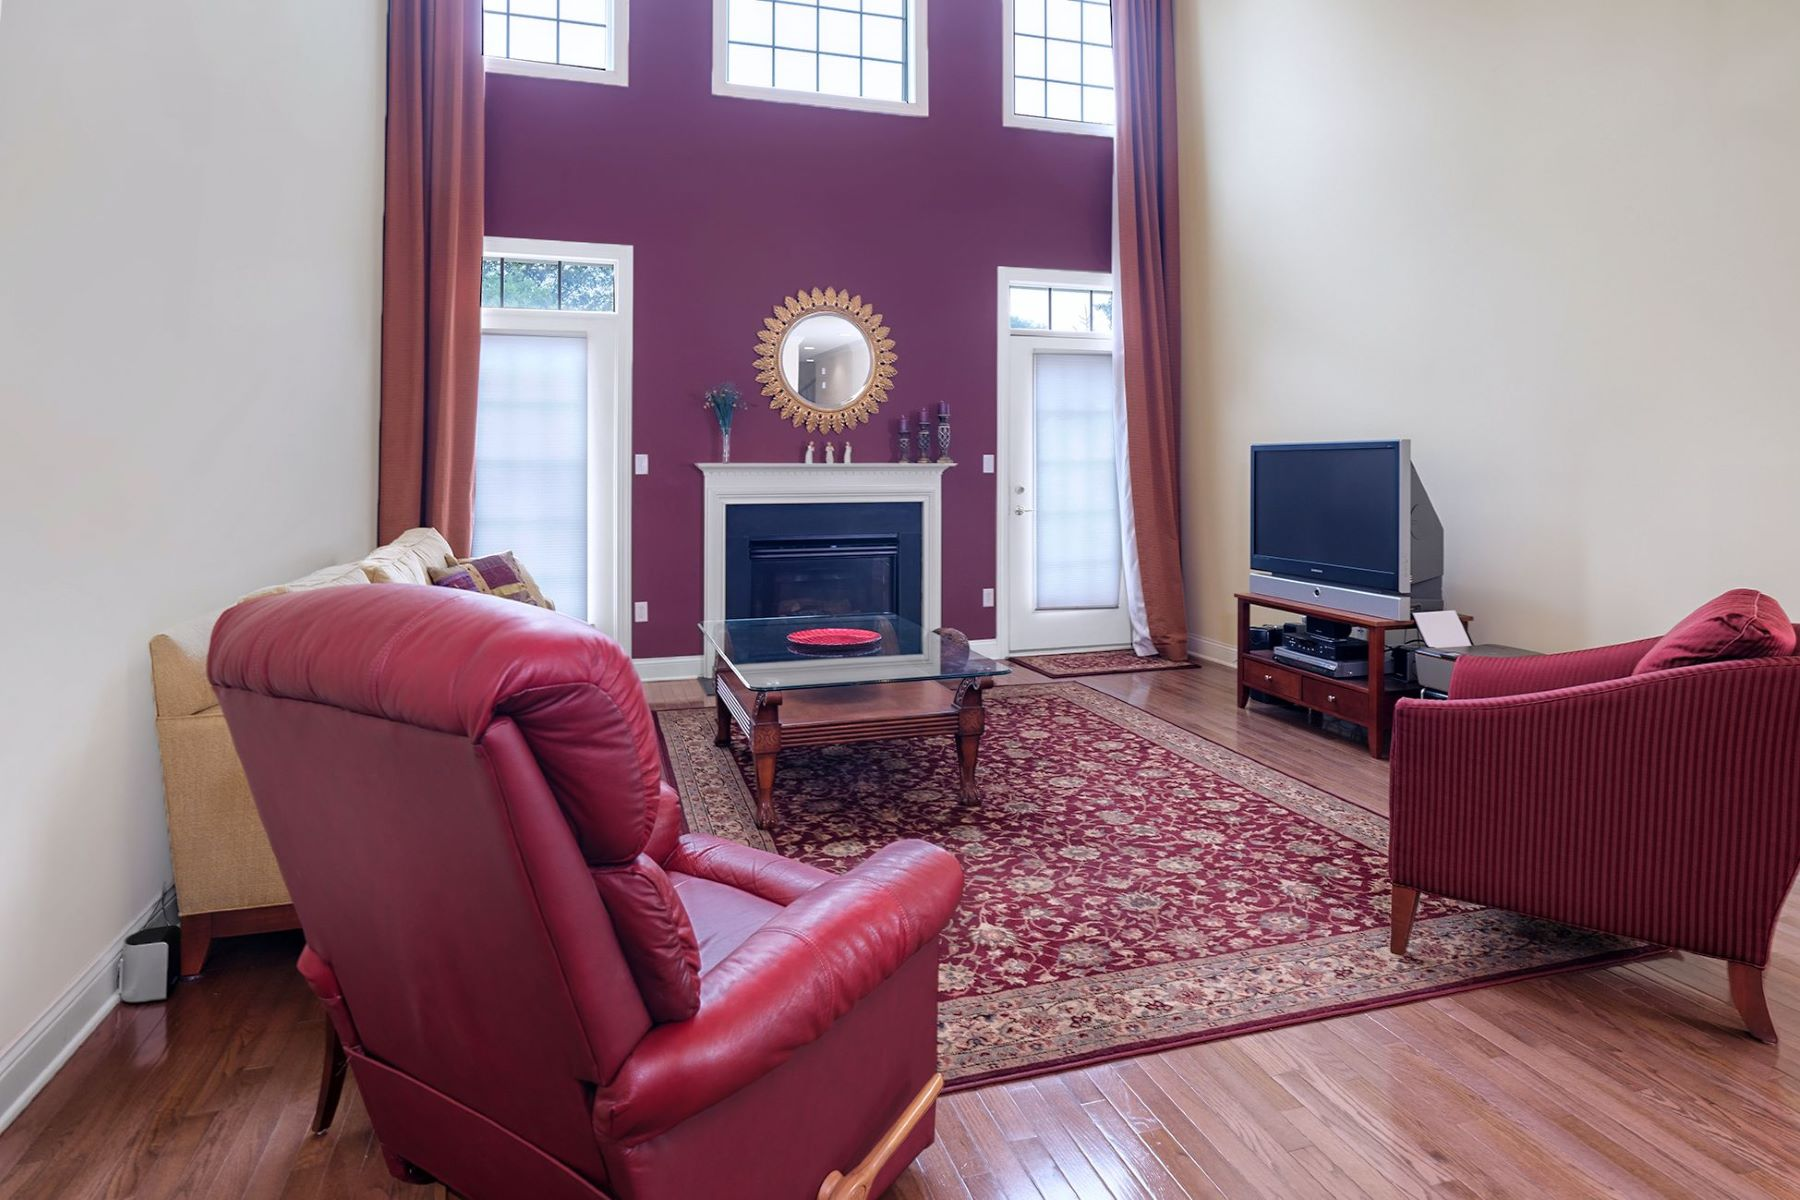 Additional photo for property listing at In Ventana At Lawrenceville 8 Schindler Court, Lawrenceville, New Jersey 08648 United States